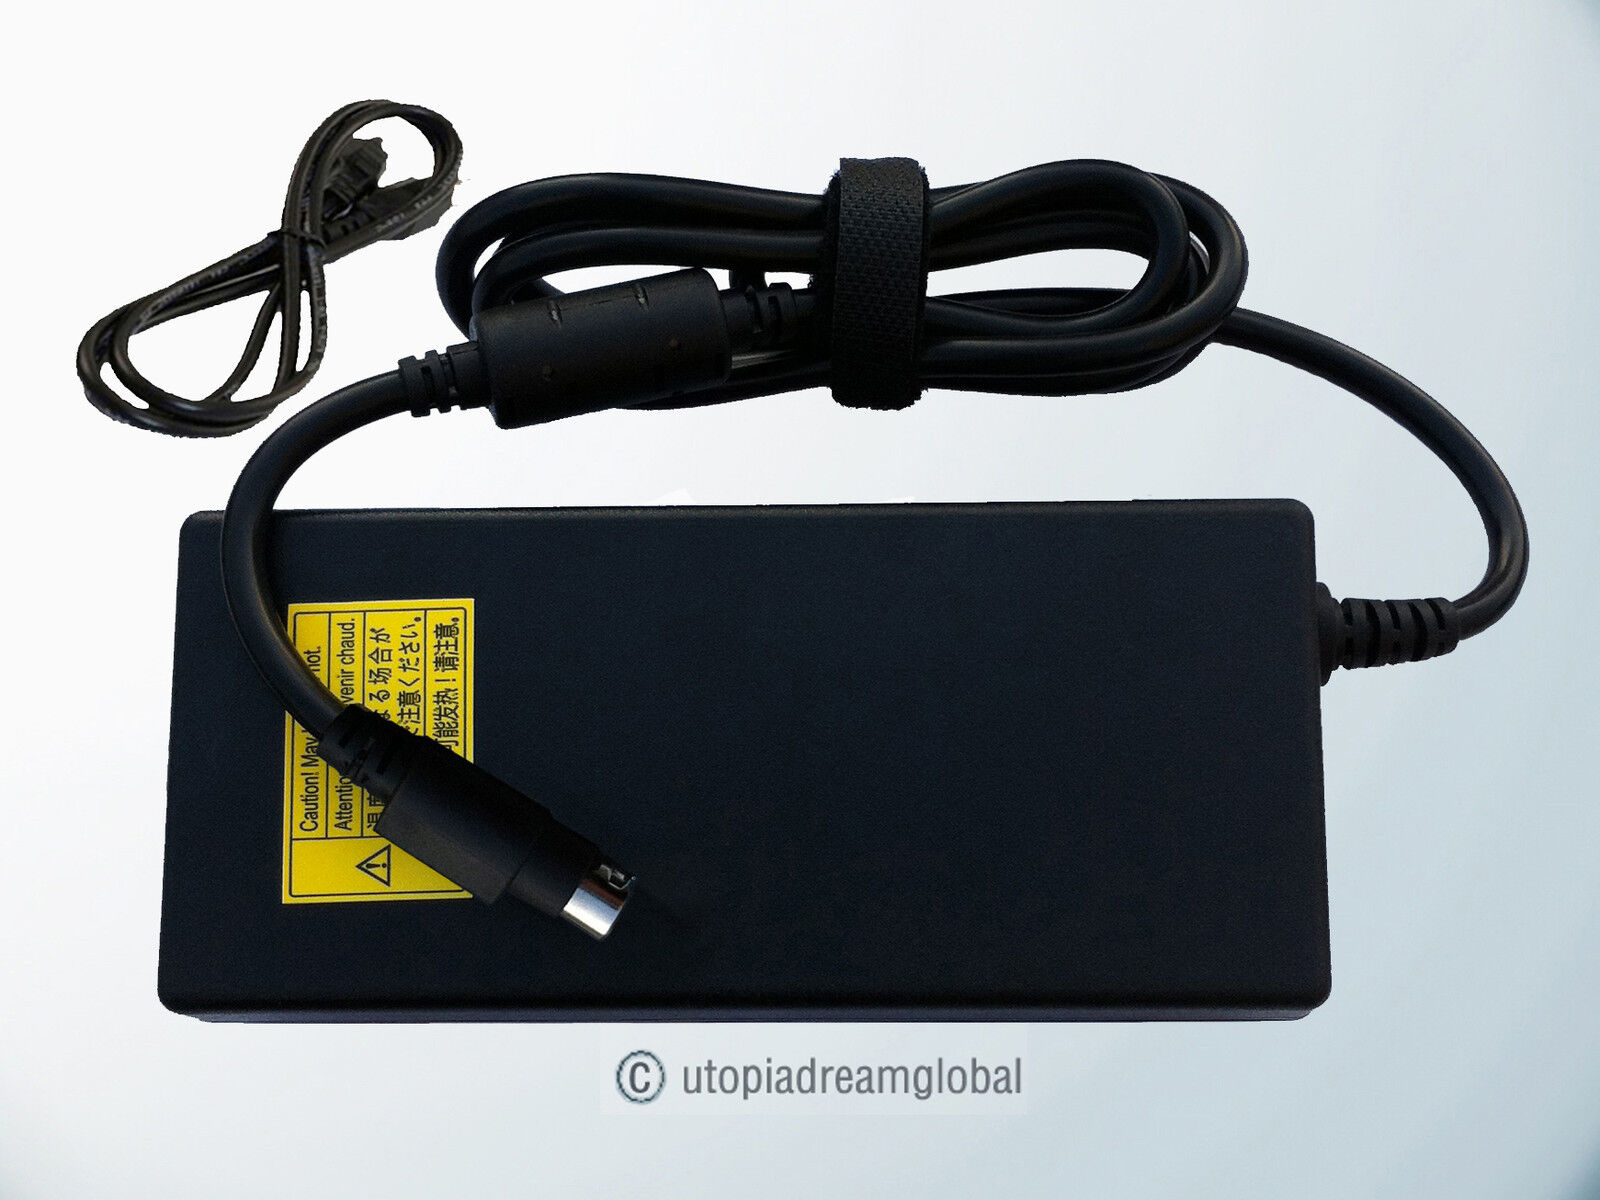 For HP PSC 1415 1417 2350 2355 2355v 2355xi 2355zi 2405 2420 AC power adapter